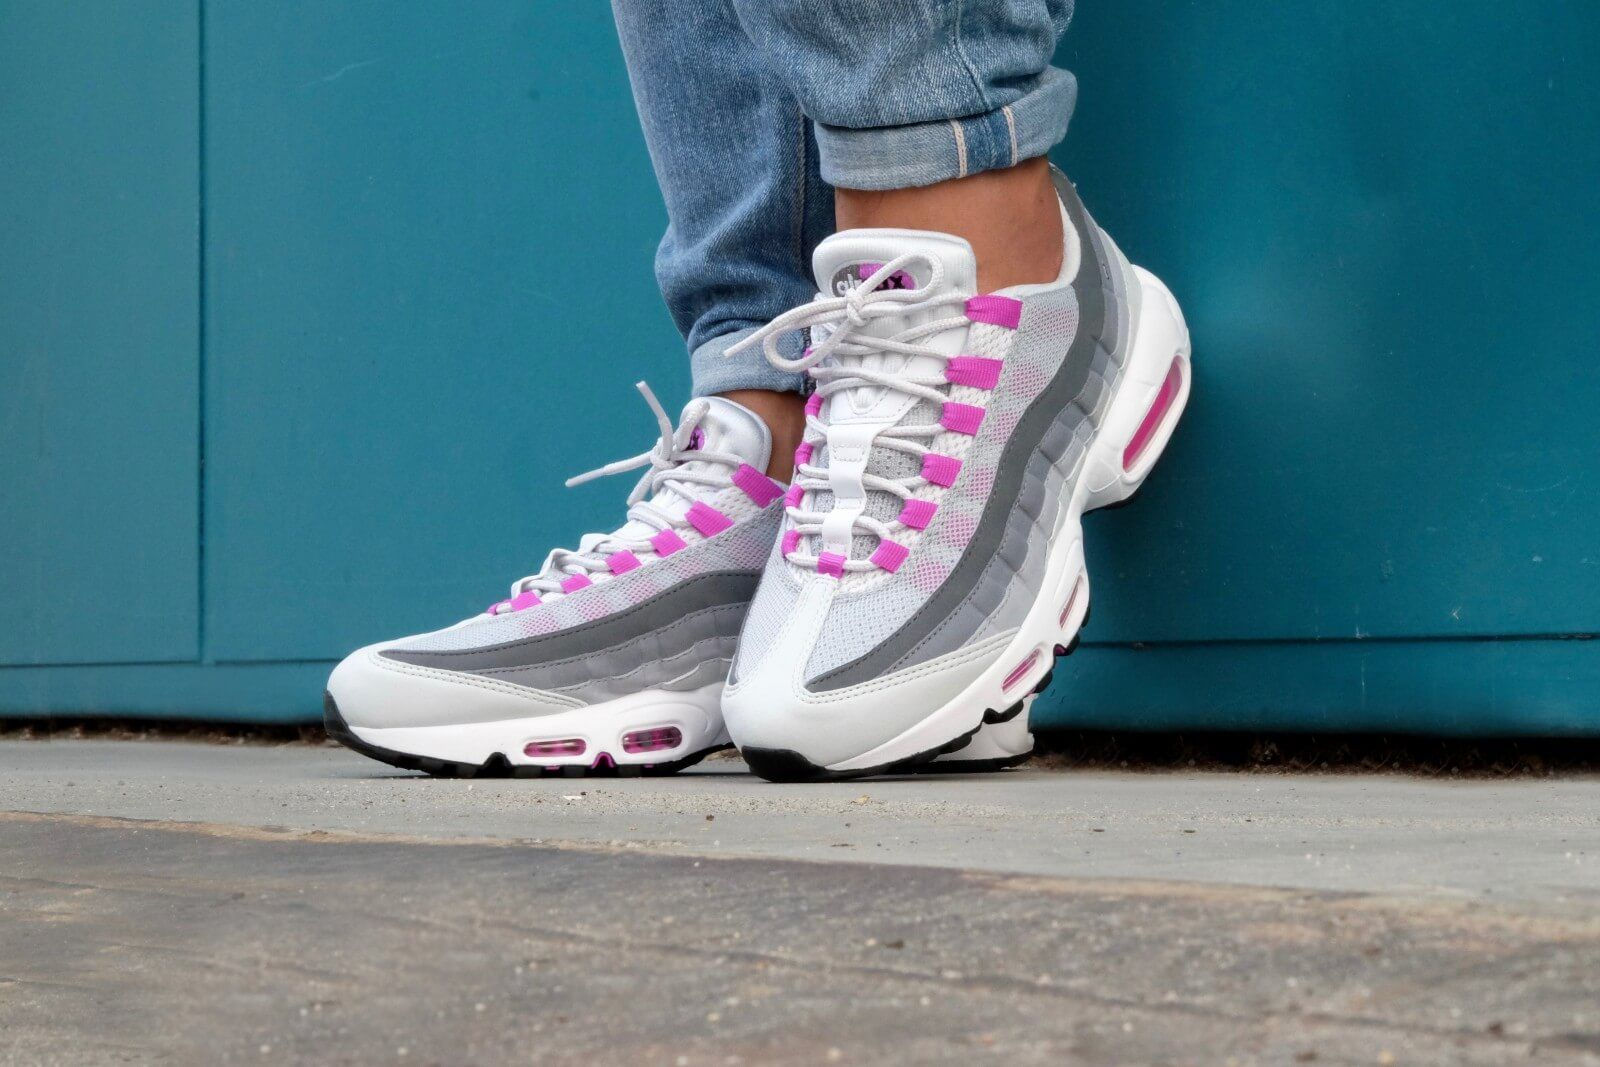 89e859956499 NIKE AIR MAX 95 PURE PLATINUM HYPER VIOLET WOMENS TRAINER 307960 001 ...